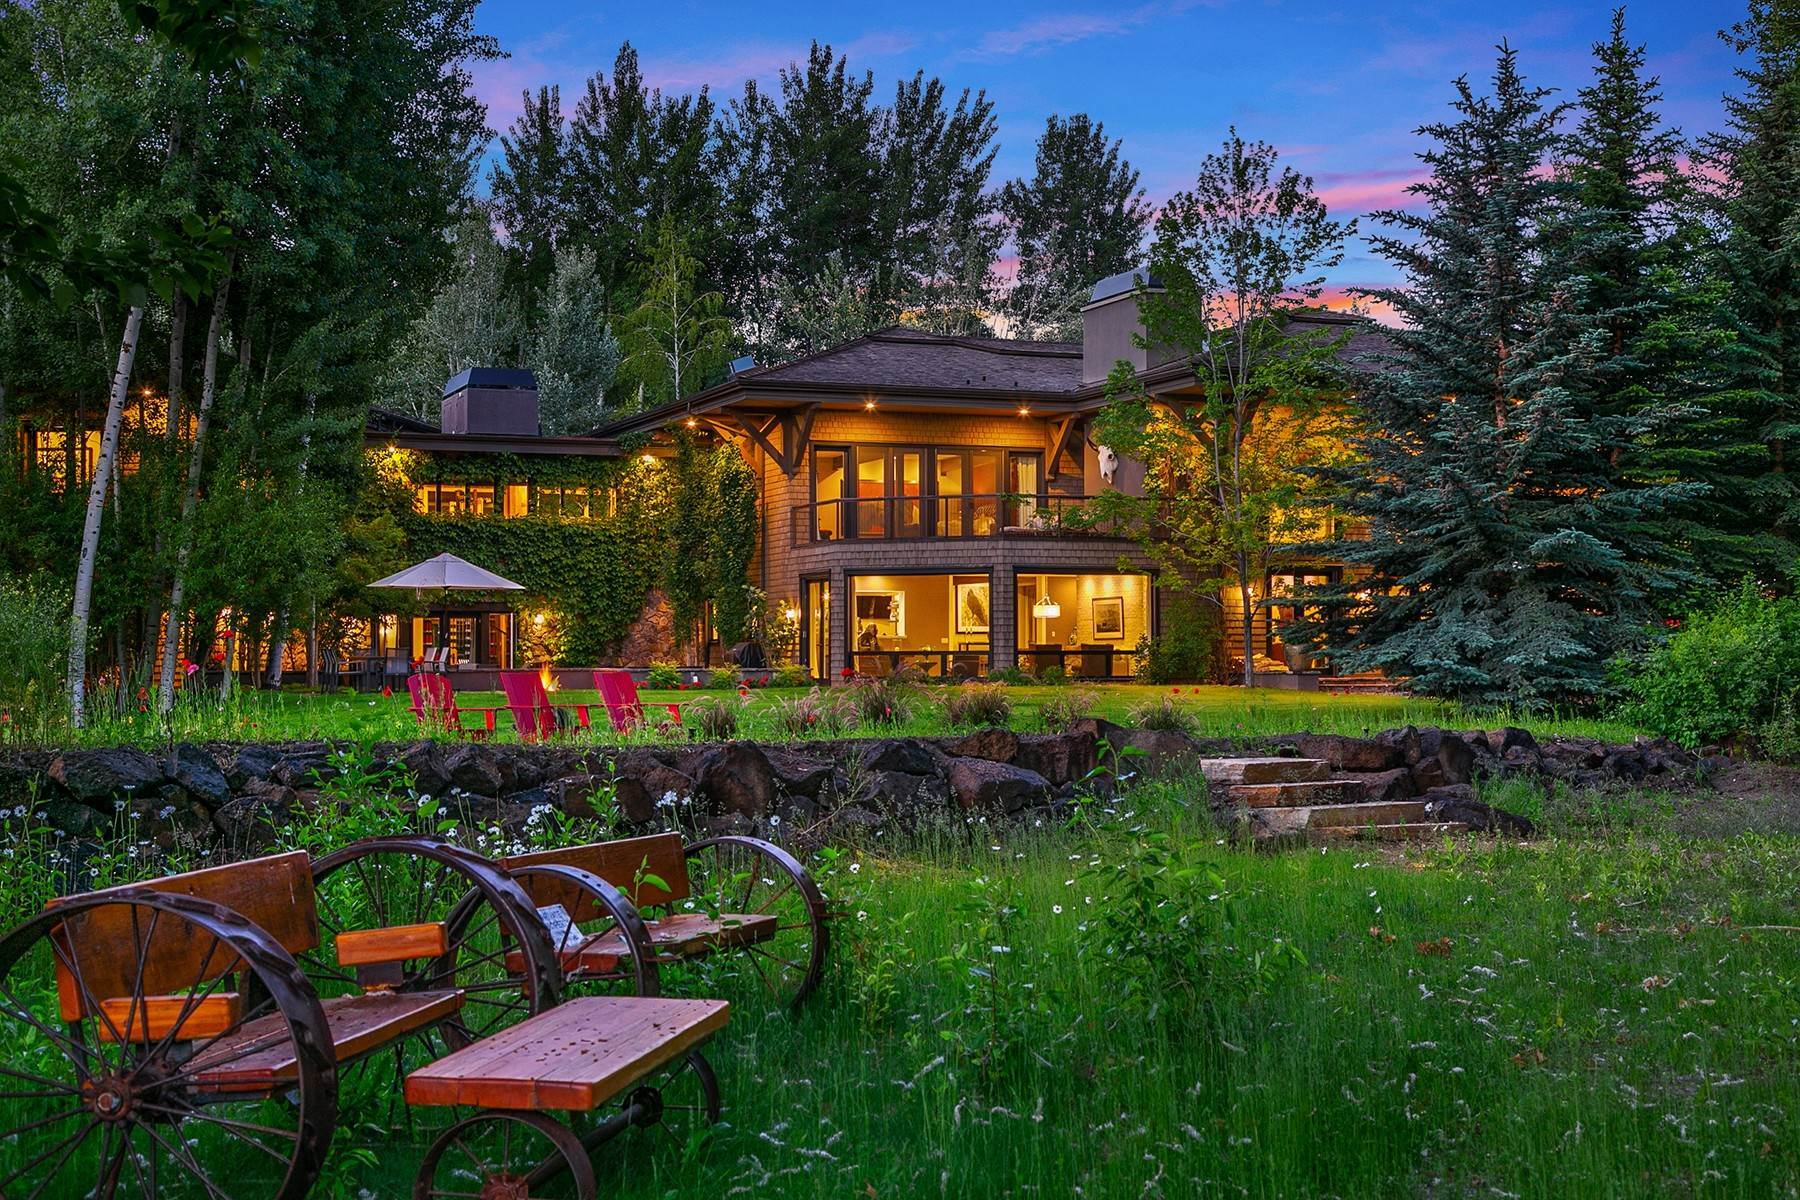 Single Family Homes for Sale at Riverfront Retreat Compound 221 & 225 Sutton Pl, Ketchum, Idaho, 83340 United States